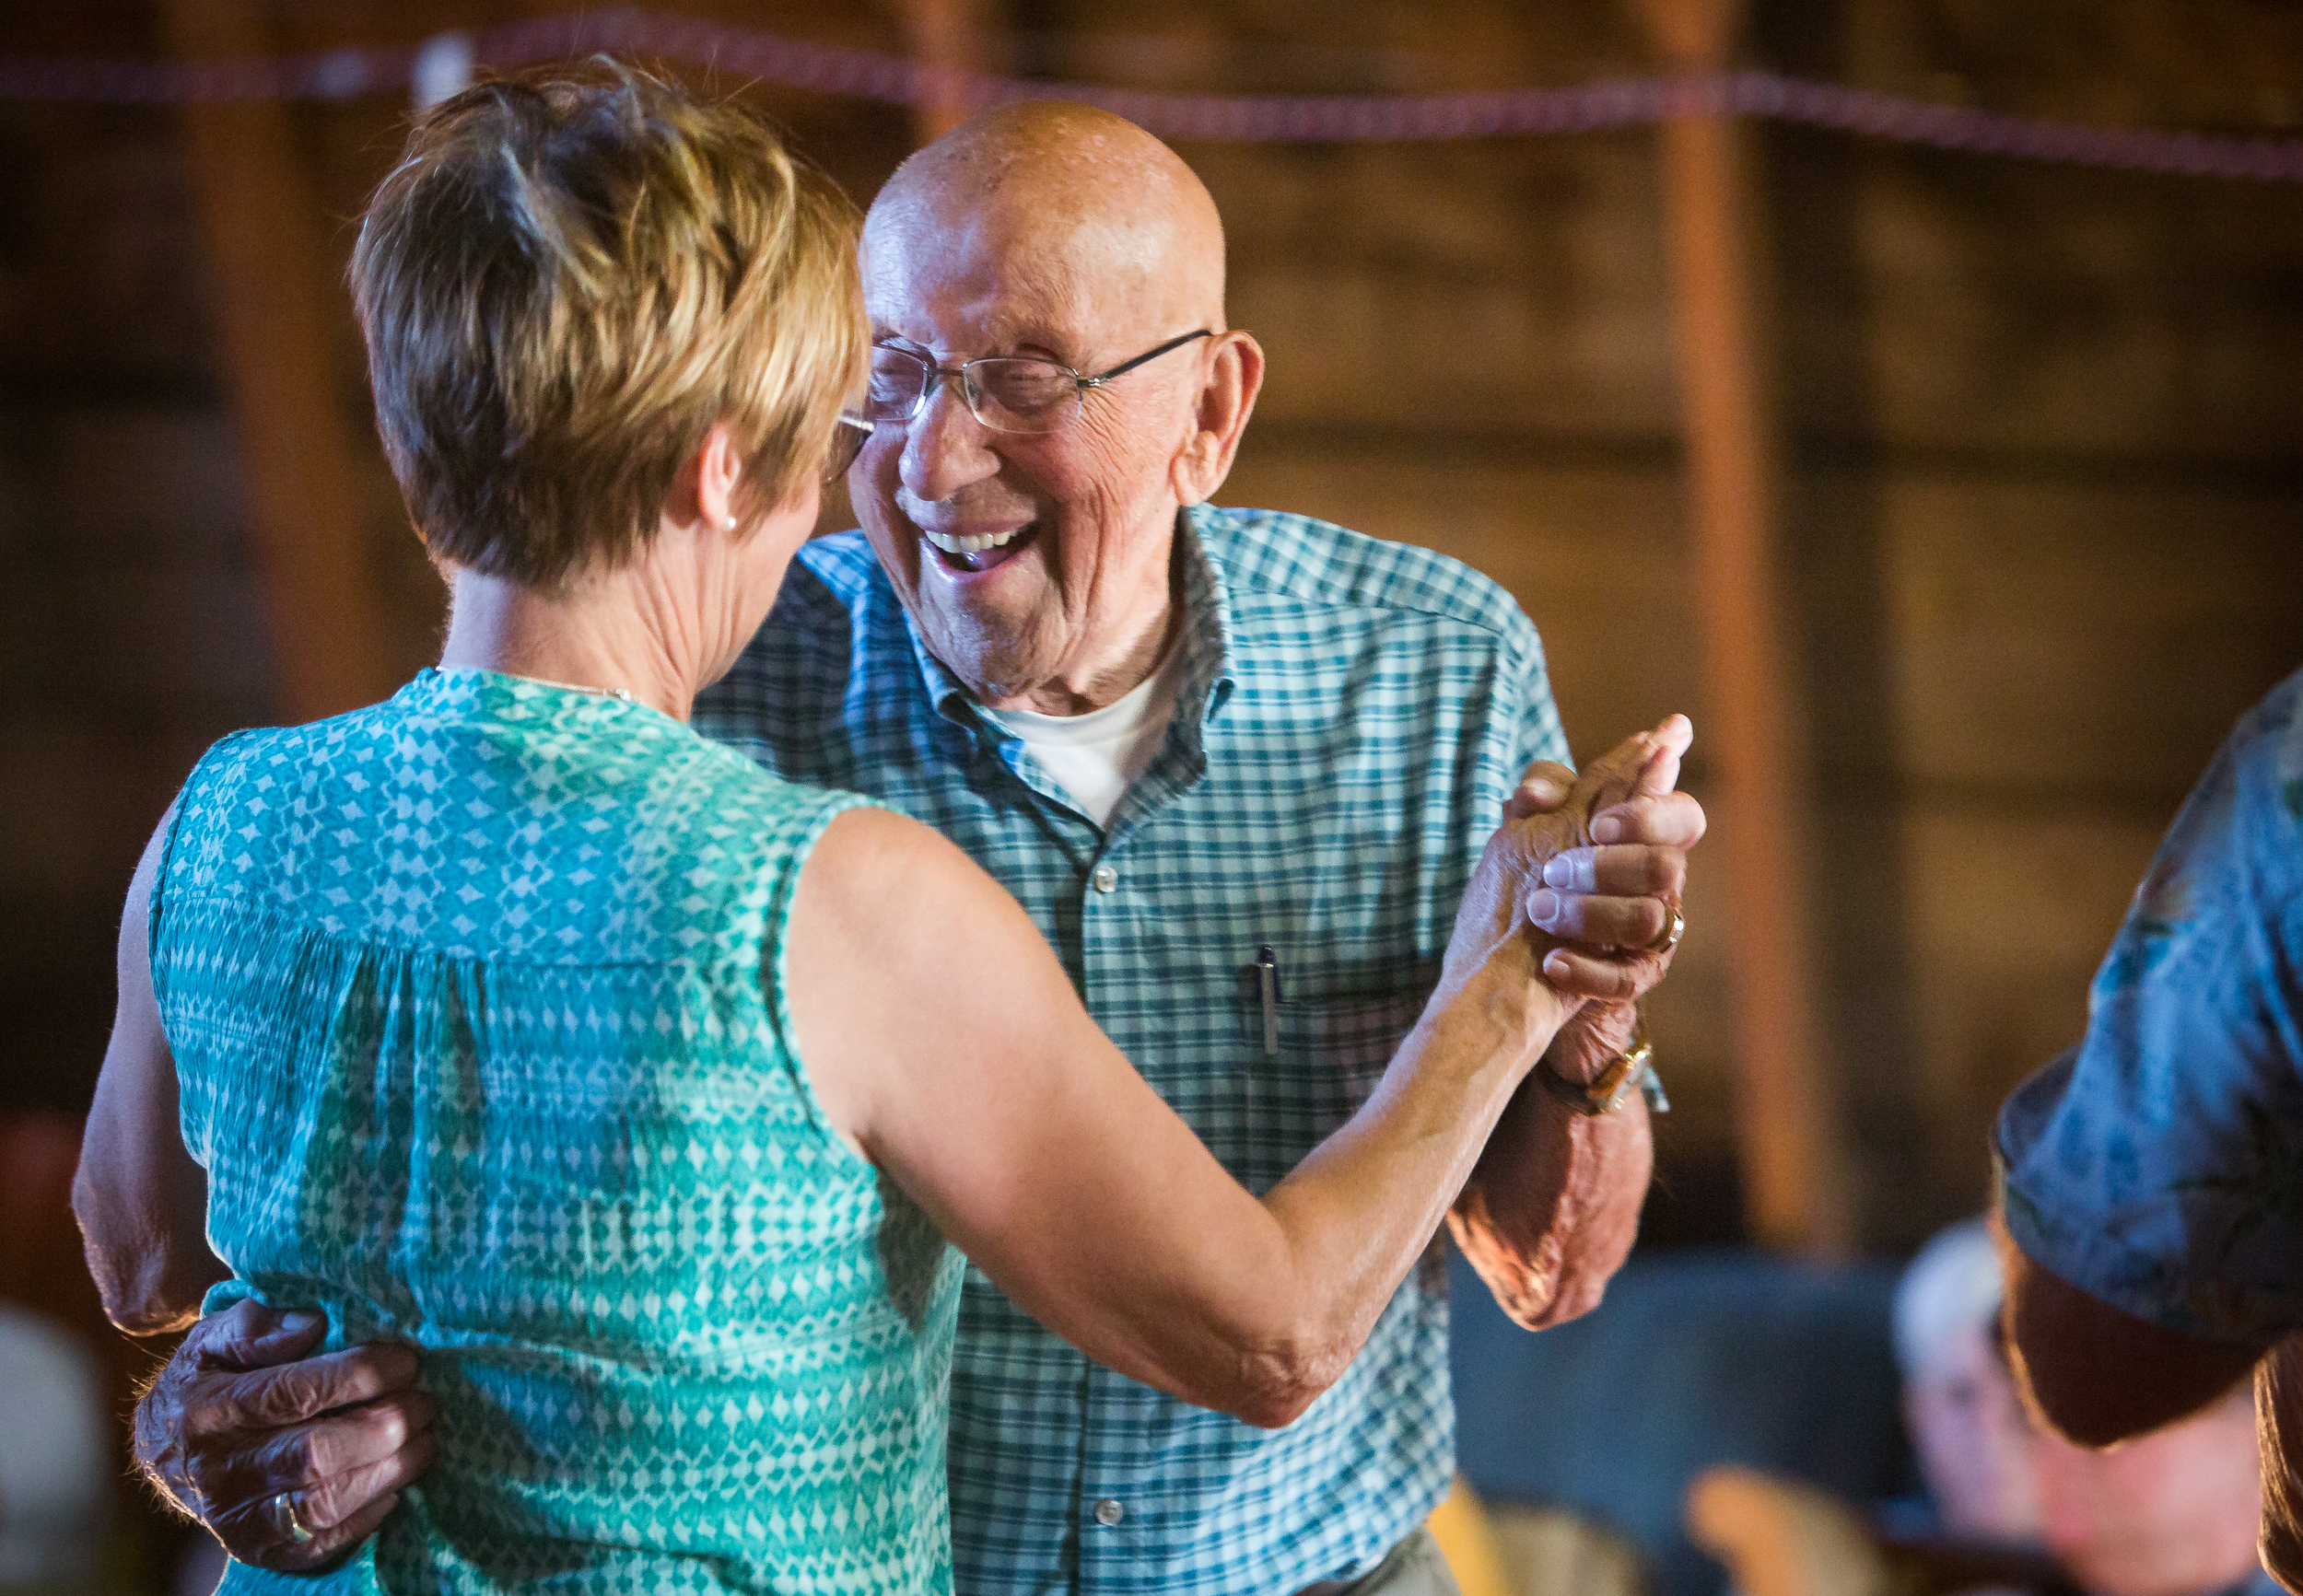 Don Johnson, 93 years old and a World War II veteran, dances with his daughter Arlyce Gibbs at Elroy Lindaas' barn dance, in Mayville, N.D. on June 25, 2016.